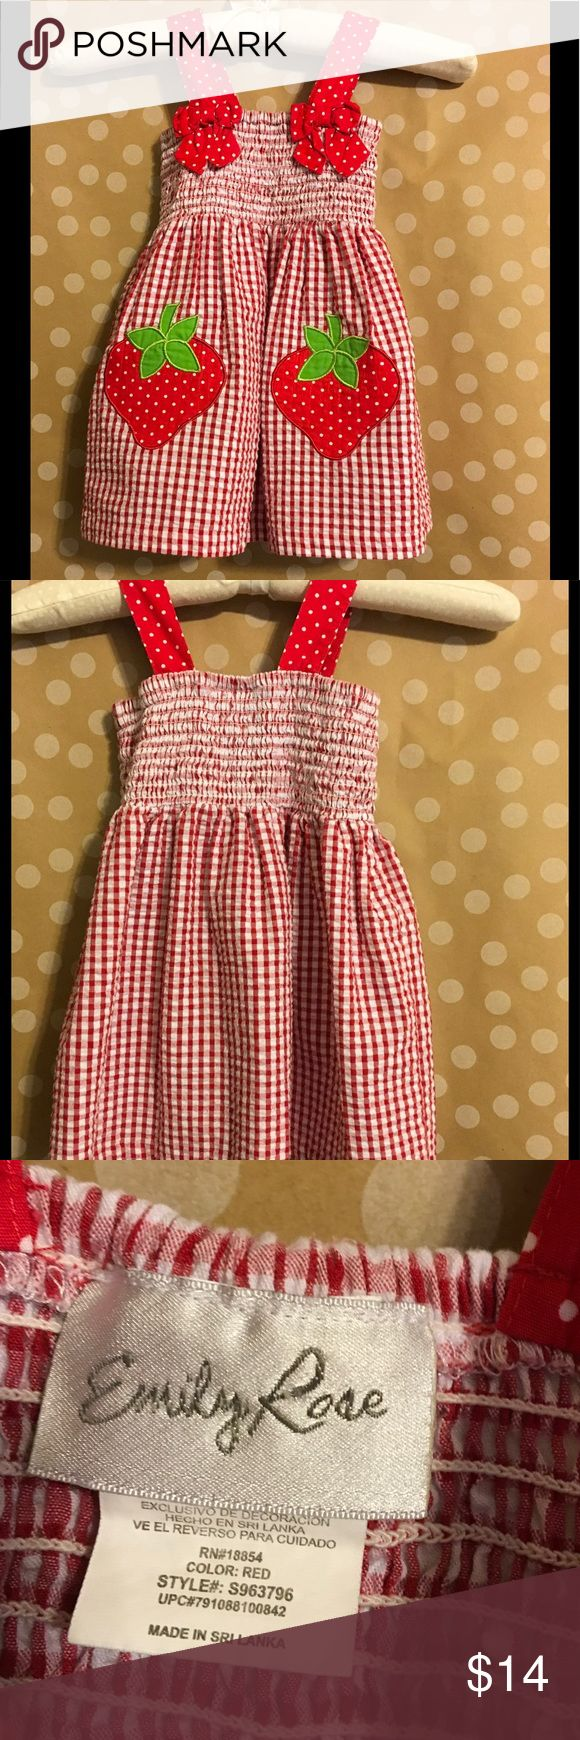 Emily Rose Strawberry Dress Size 2T Emily Rose Girls dress in Very Good Condition. It is a very cute strawberry dress and is a size 2T. Any questions, please ask!   Check out my store and my other listings... Name brand items at great prices! I love offers!! Emily Rose Dresses Casual